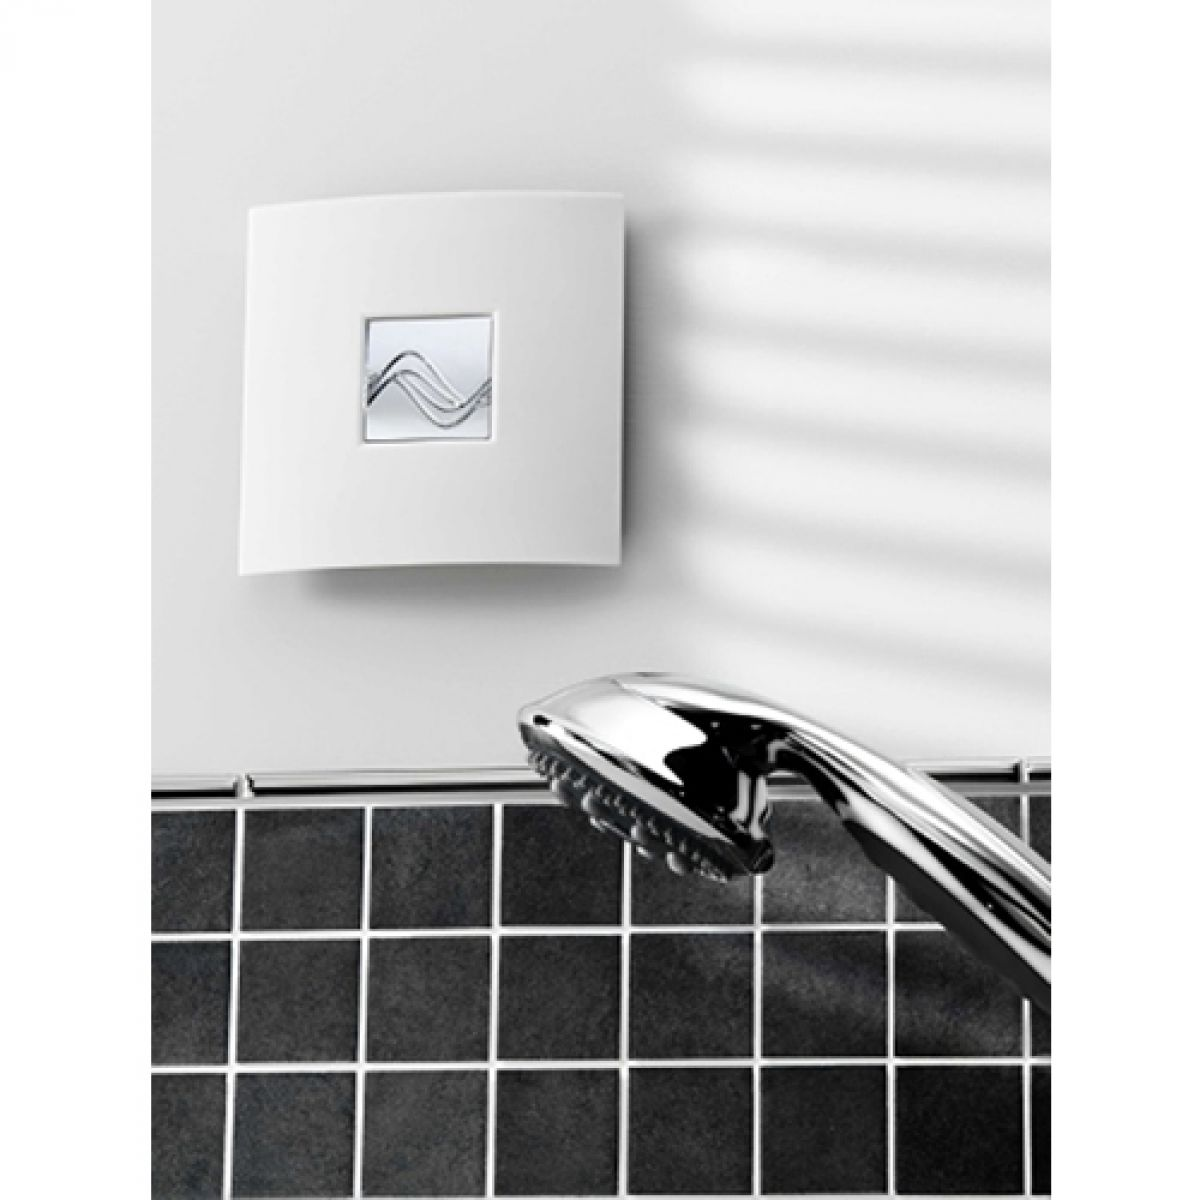 home bathroom accessories extractor fans zehnder silent wall fan ip24 - Bathroom Extractor Fan